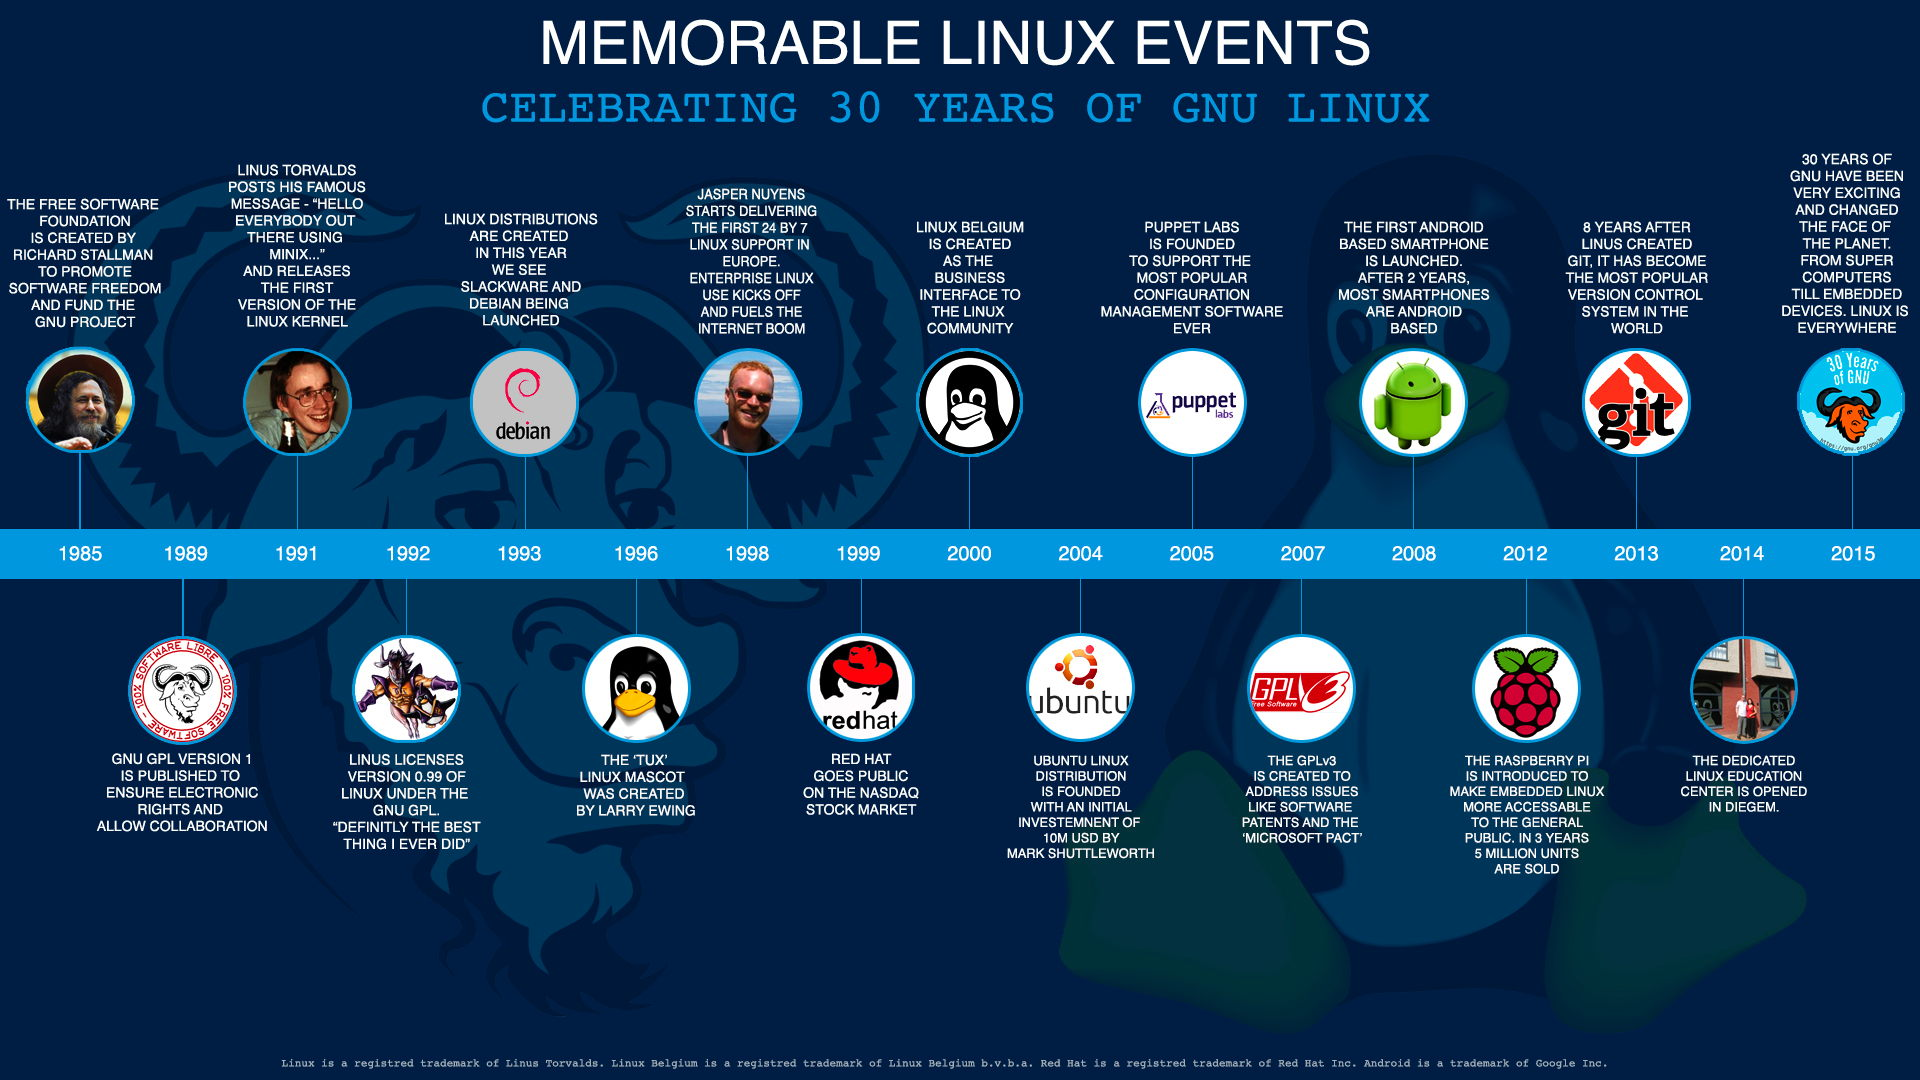 Celebrating 30 Years and Counting of GNU-Linux